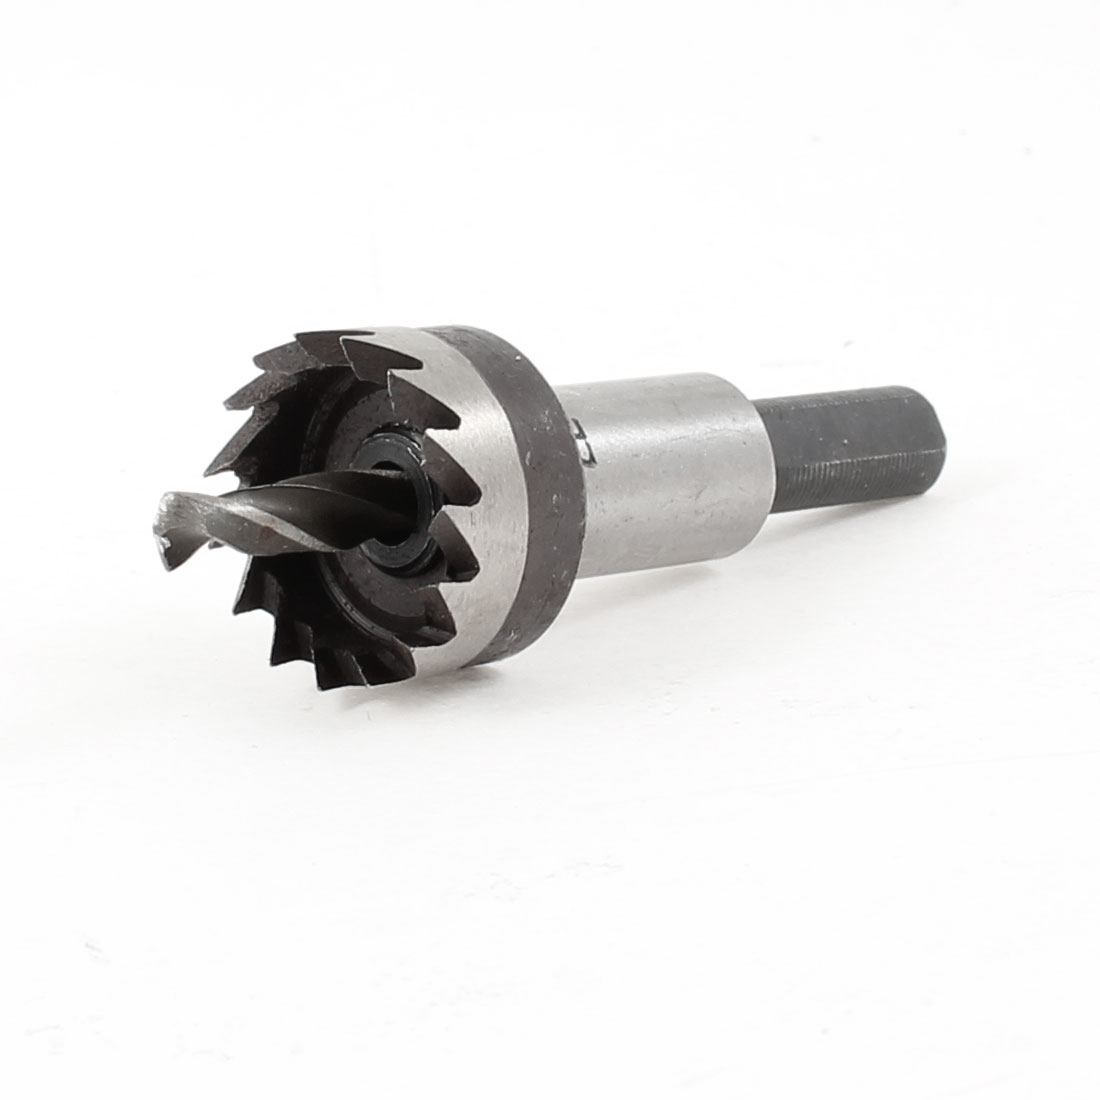 Triangle Shank 5.5mm Twist Drill Bit 22mm Diameter HSS Iron Cutting Hole Saw